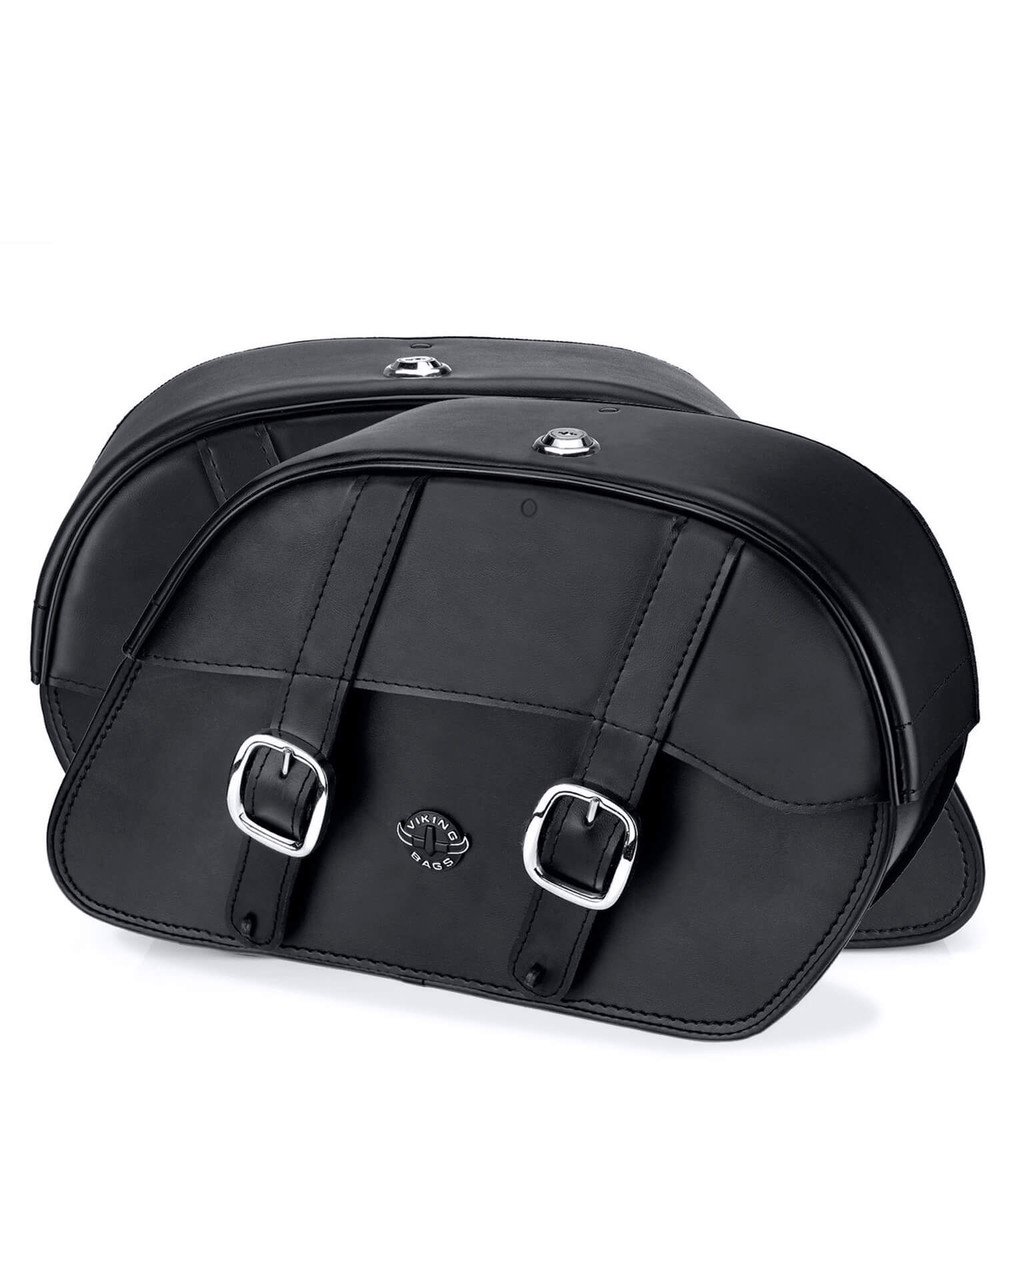 Honda 1500 Valkyrie Interstate Vikingbags Shock Cutout Slanted Large Leather Motorcycle Saddlebags Both Bags View